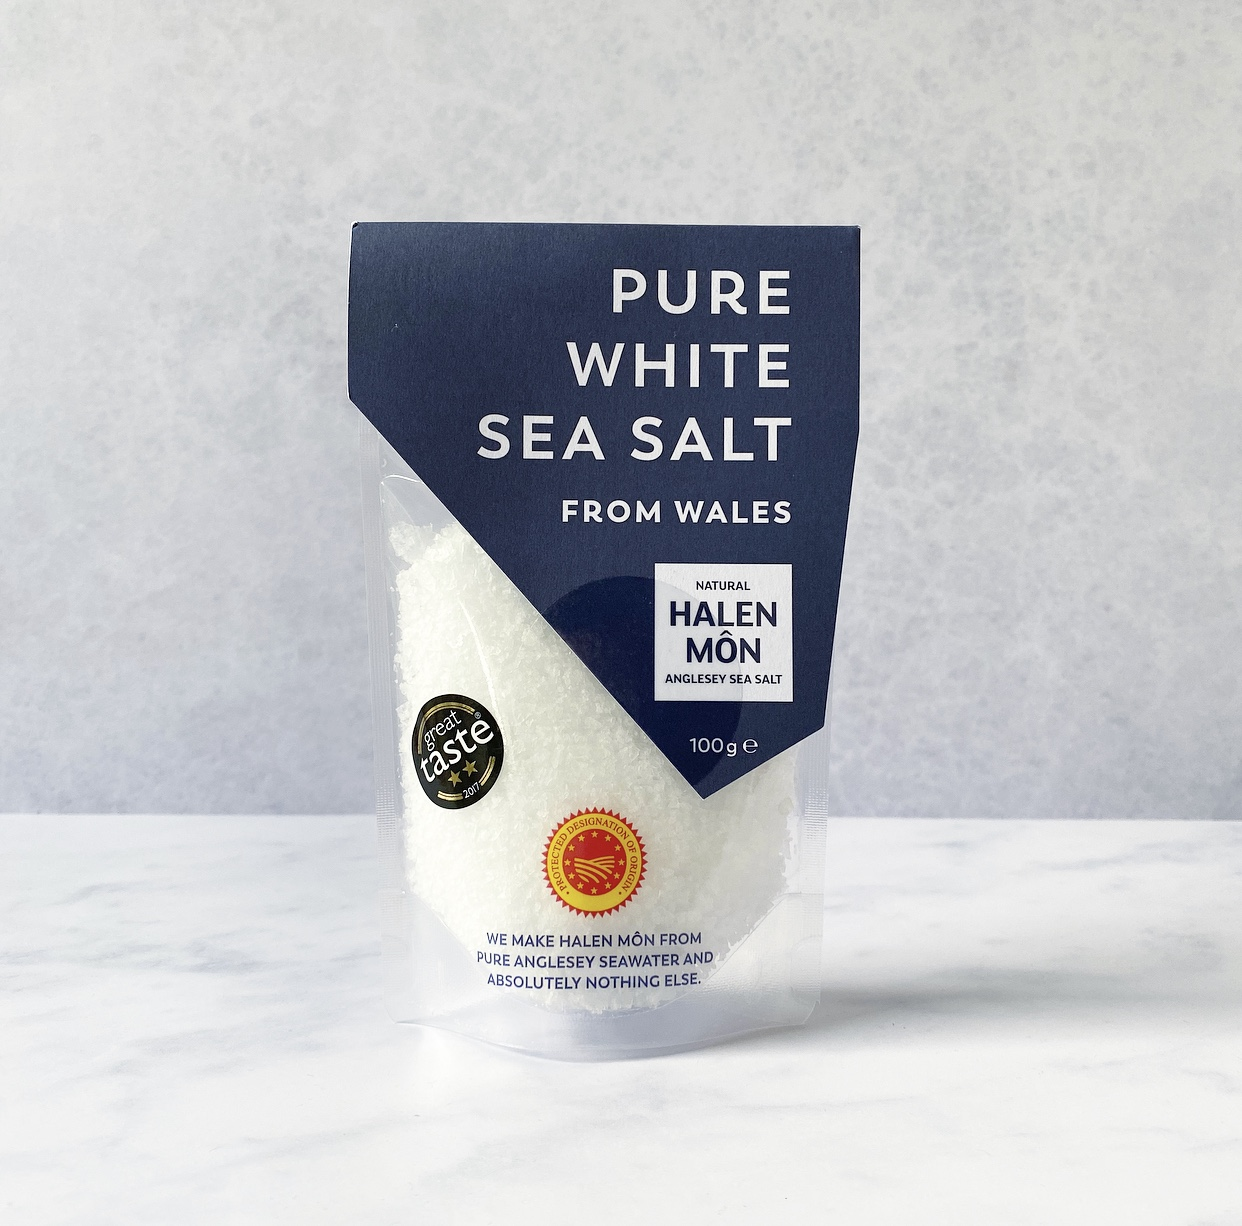 Halen Môn Pure White Sea Salt